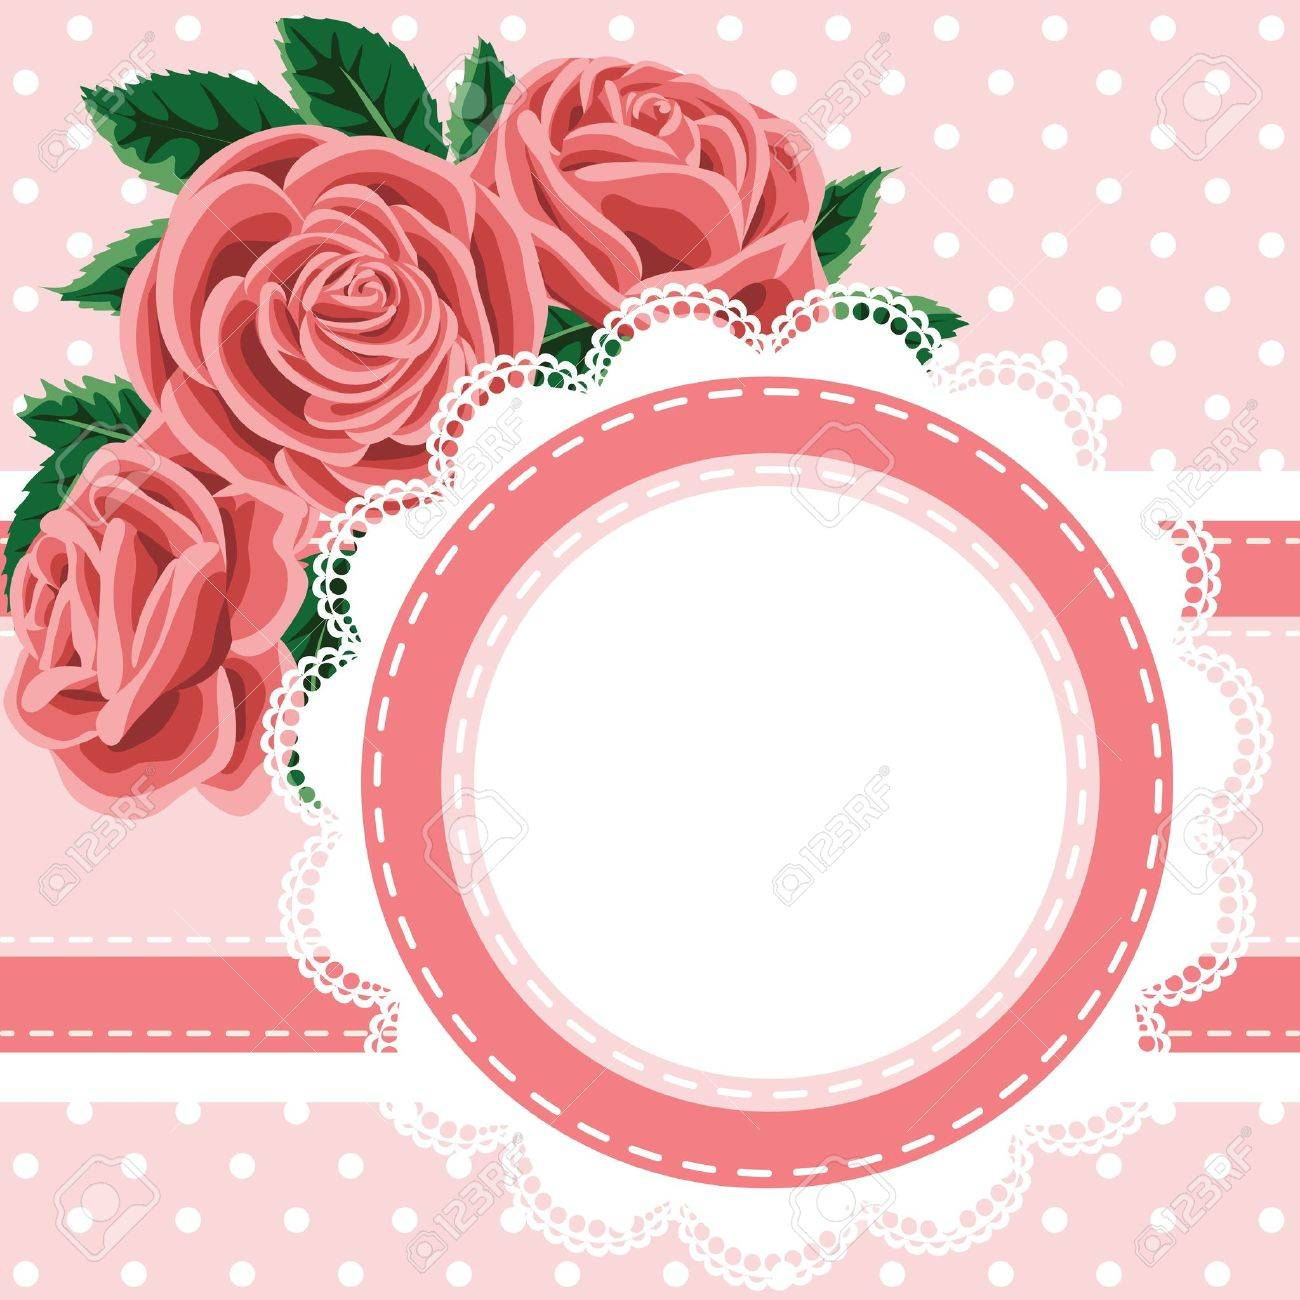 Invitation, greeting card with lace and roses Stock Vector - 20020397